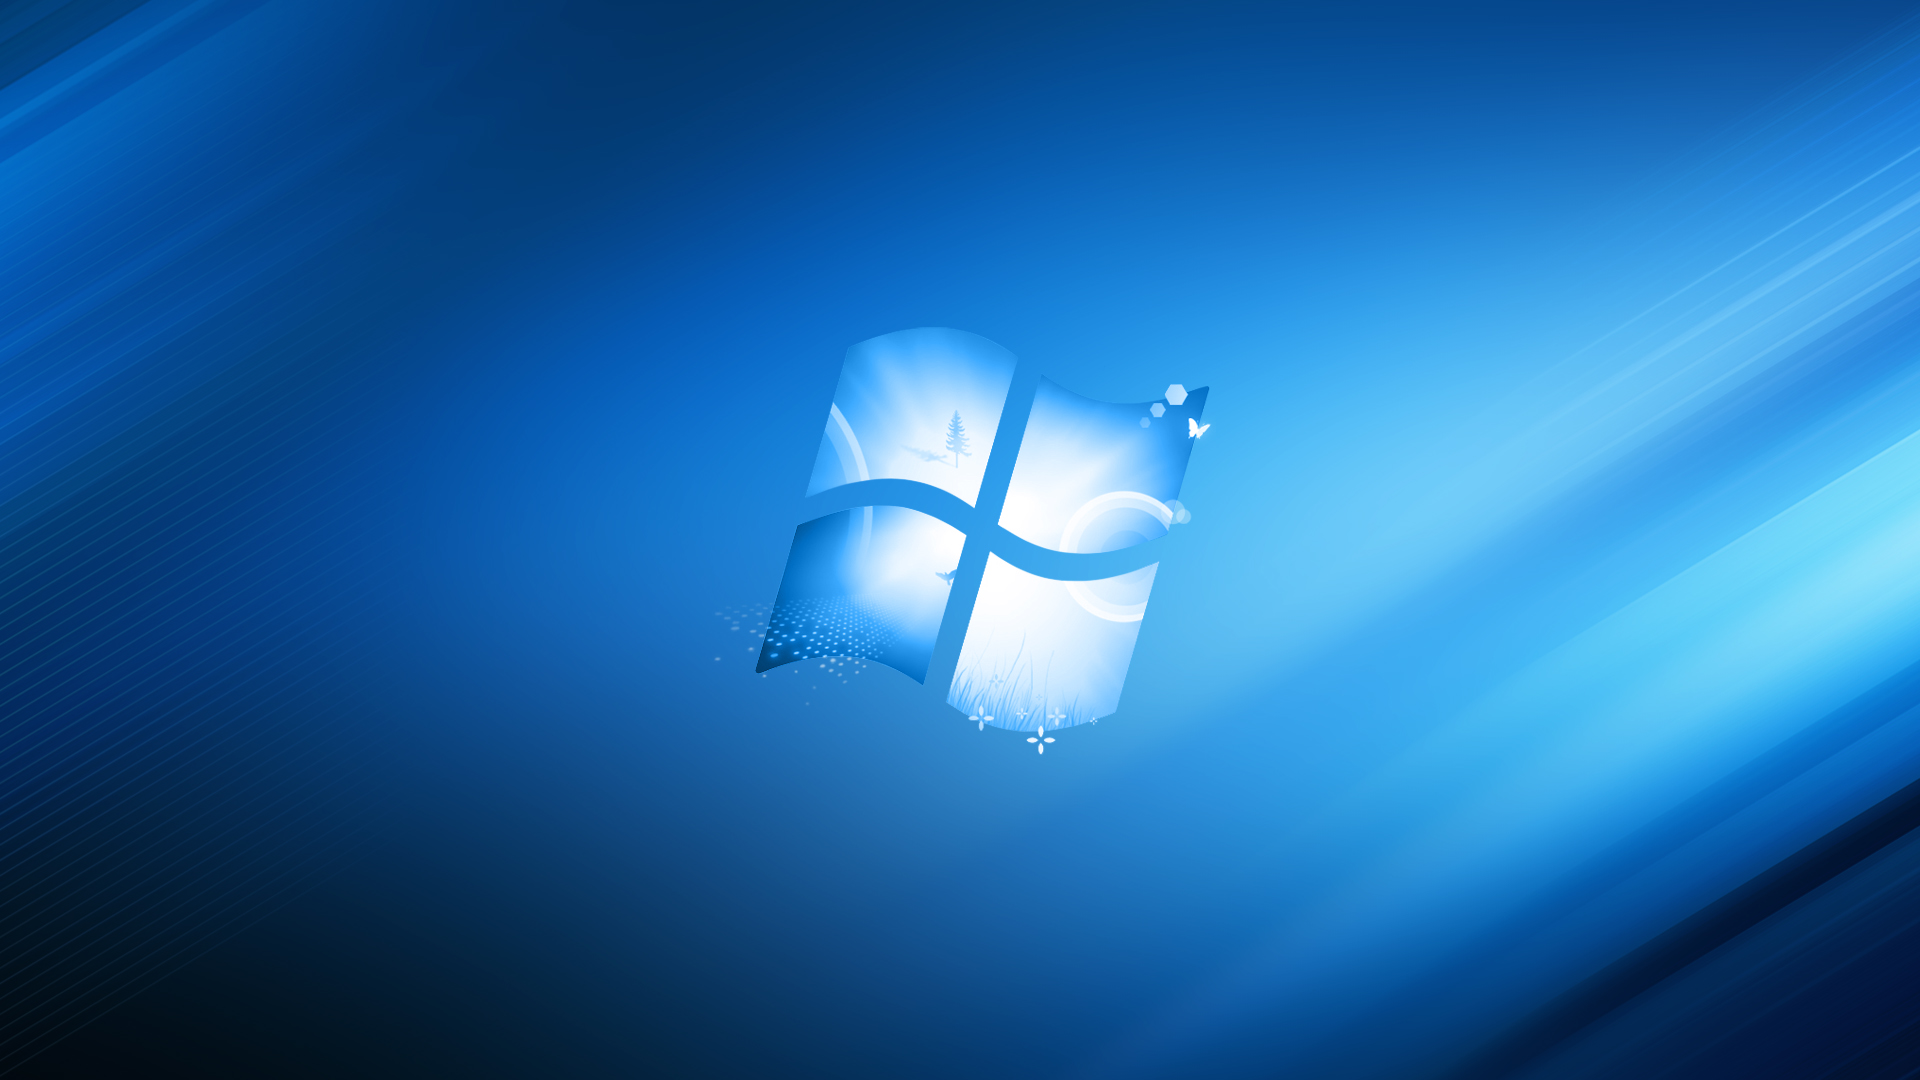 Windows 8 images windows 8 wallpaper 7 hd wallpaper and for Window 8 1 wallpaper